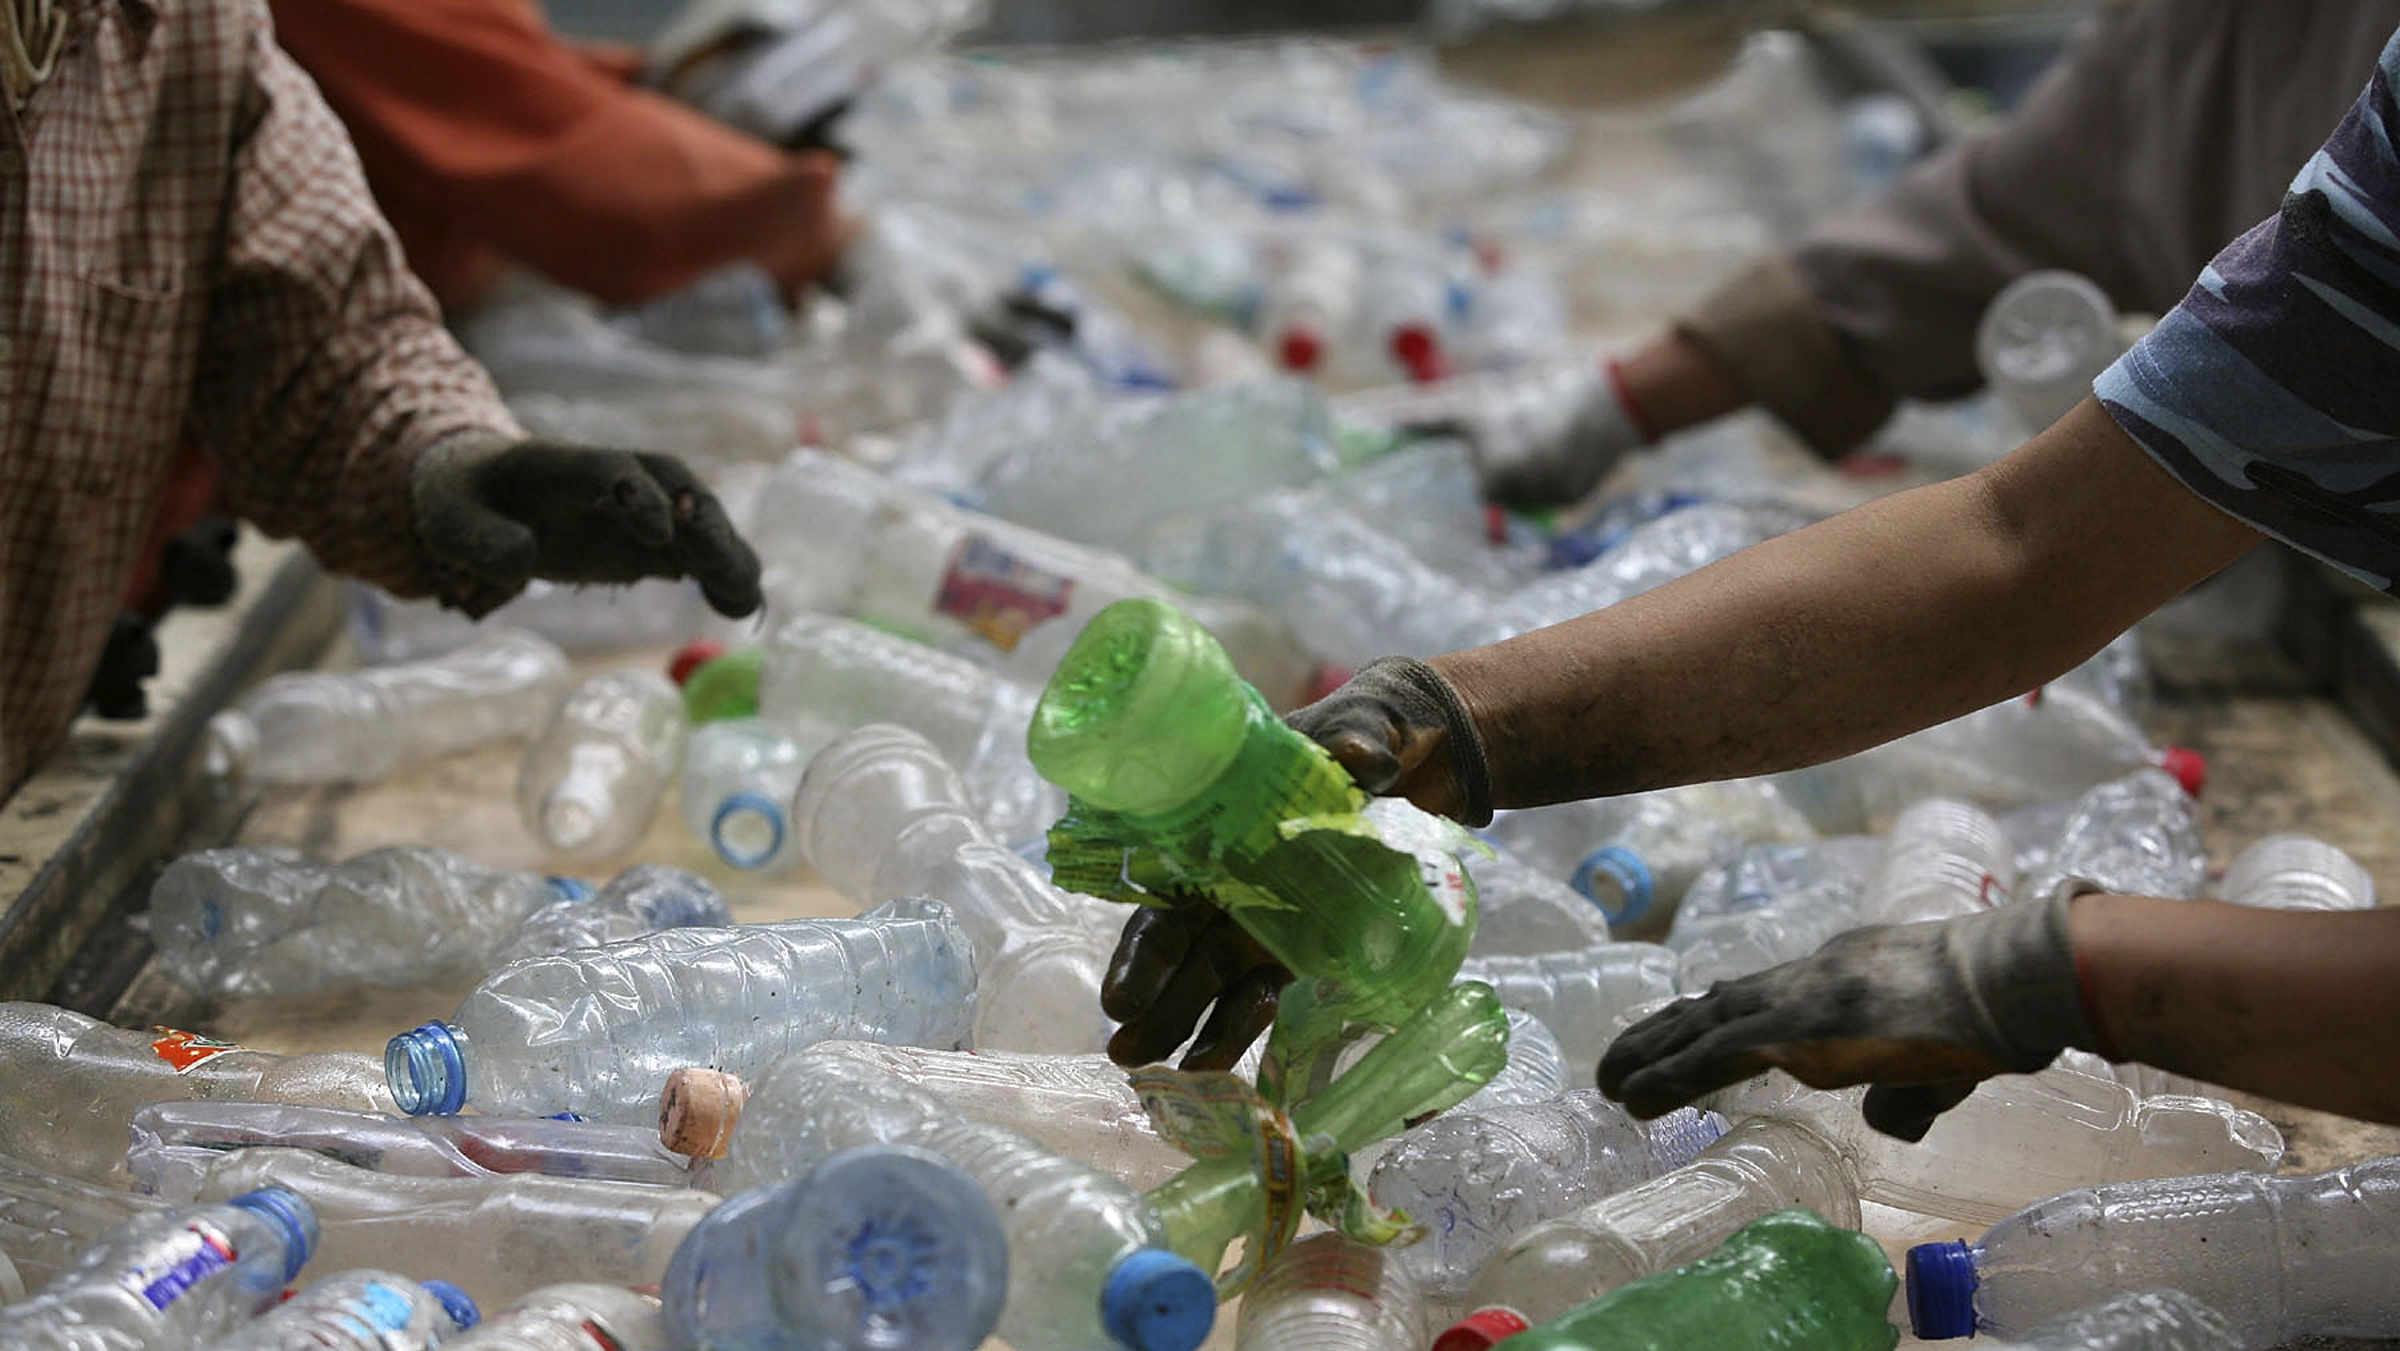 Employees sort plastic bottles at a recycling center in Beijing, China, Sunday, Aug. 30, 2009. (AP Photo